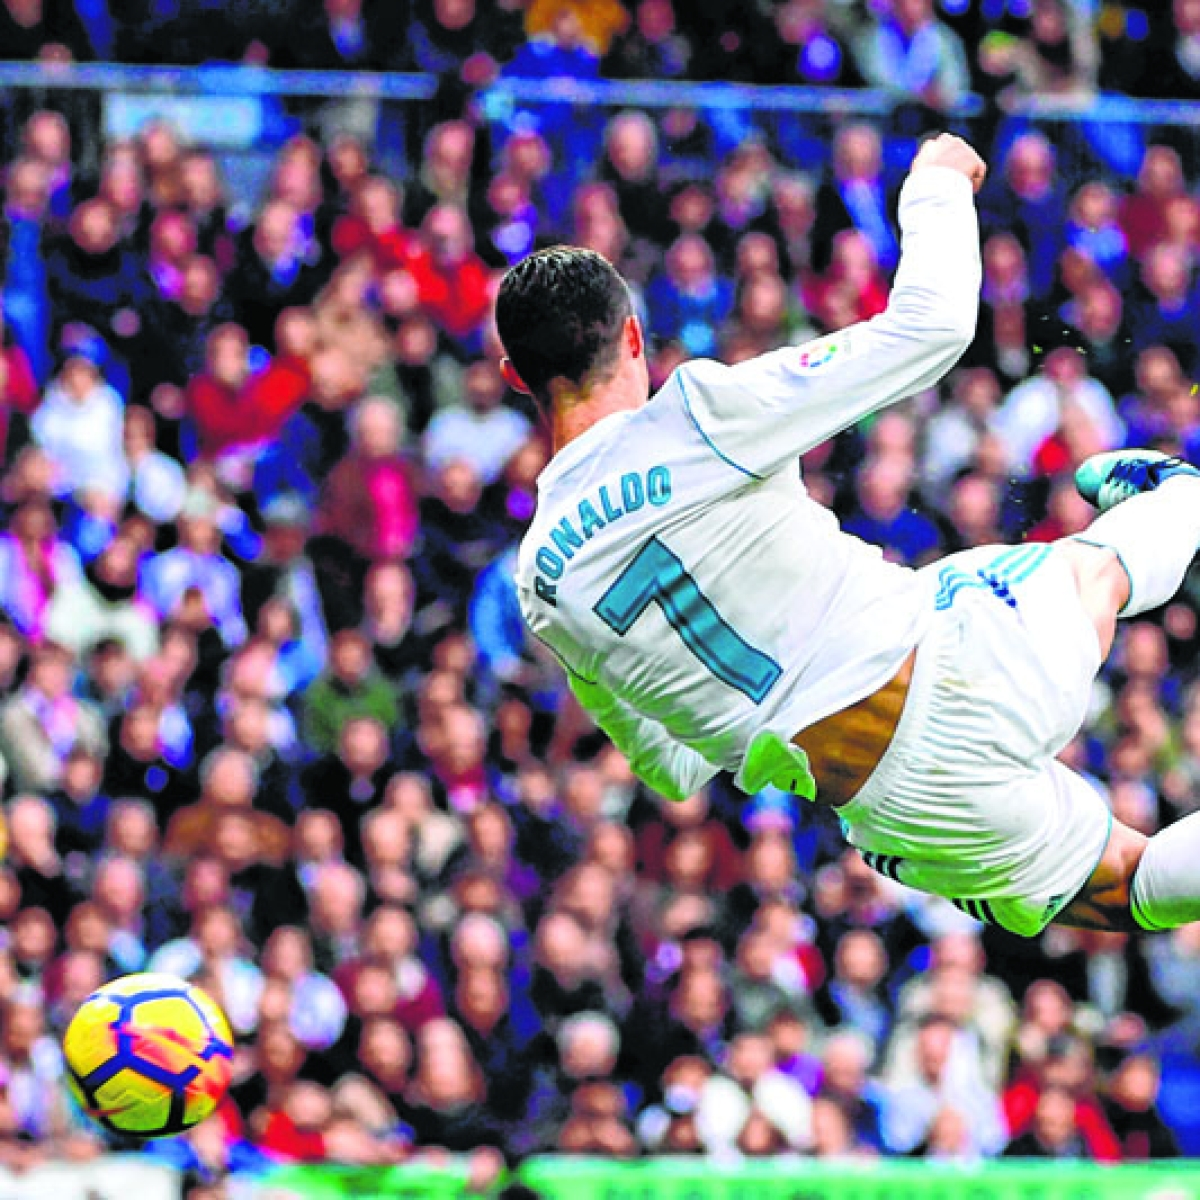 I don't play for records: Cristiano Ronaldo on 700th goal